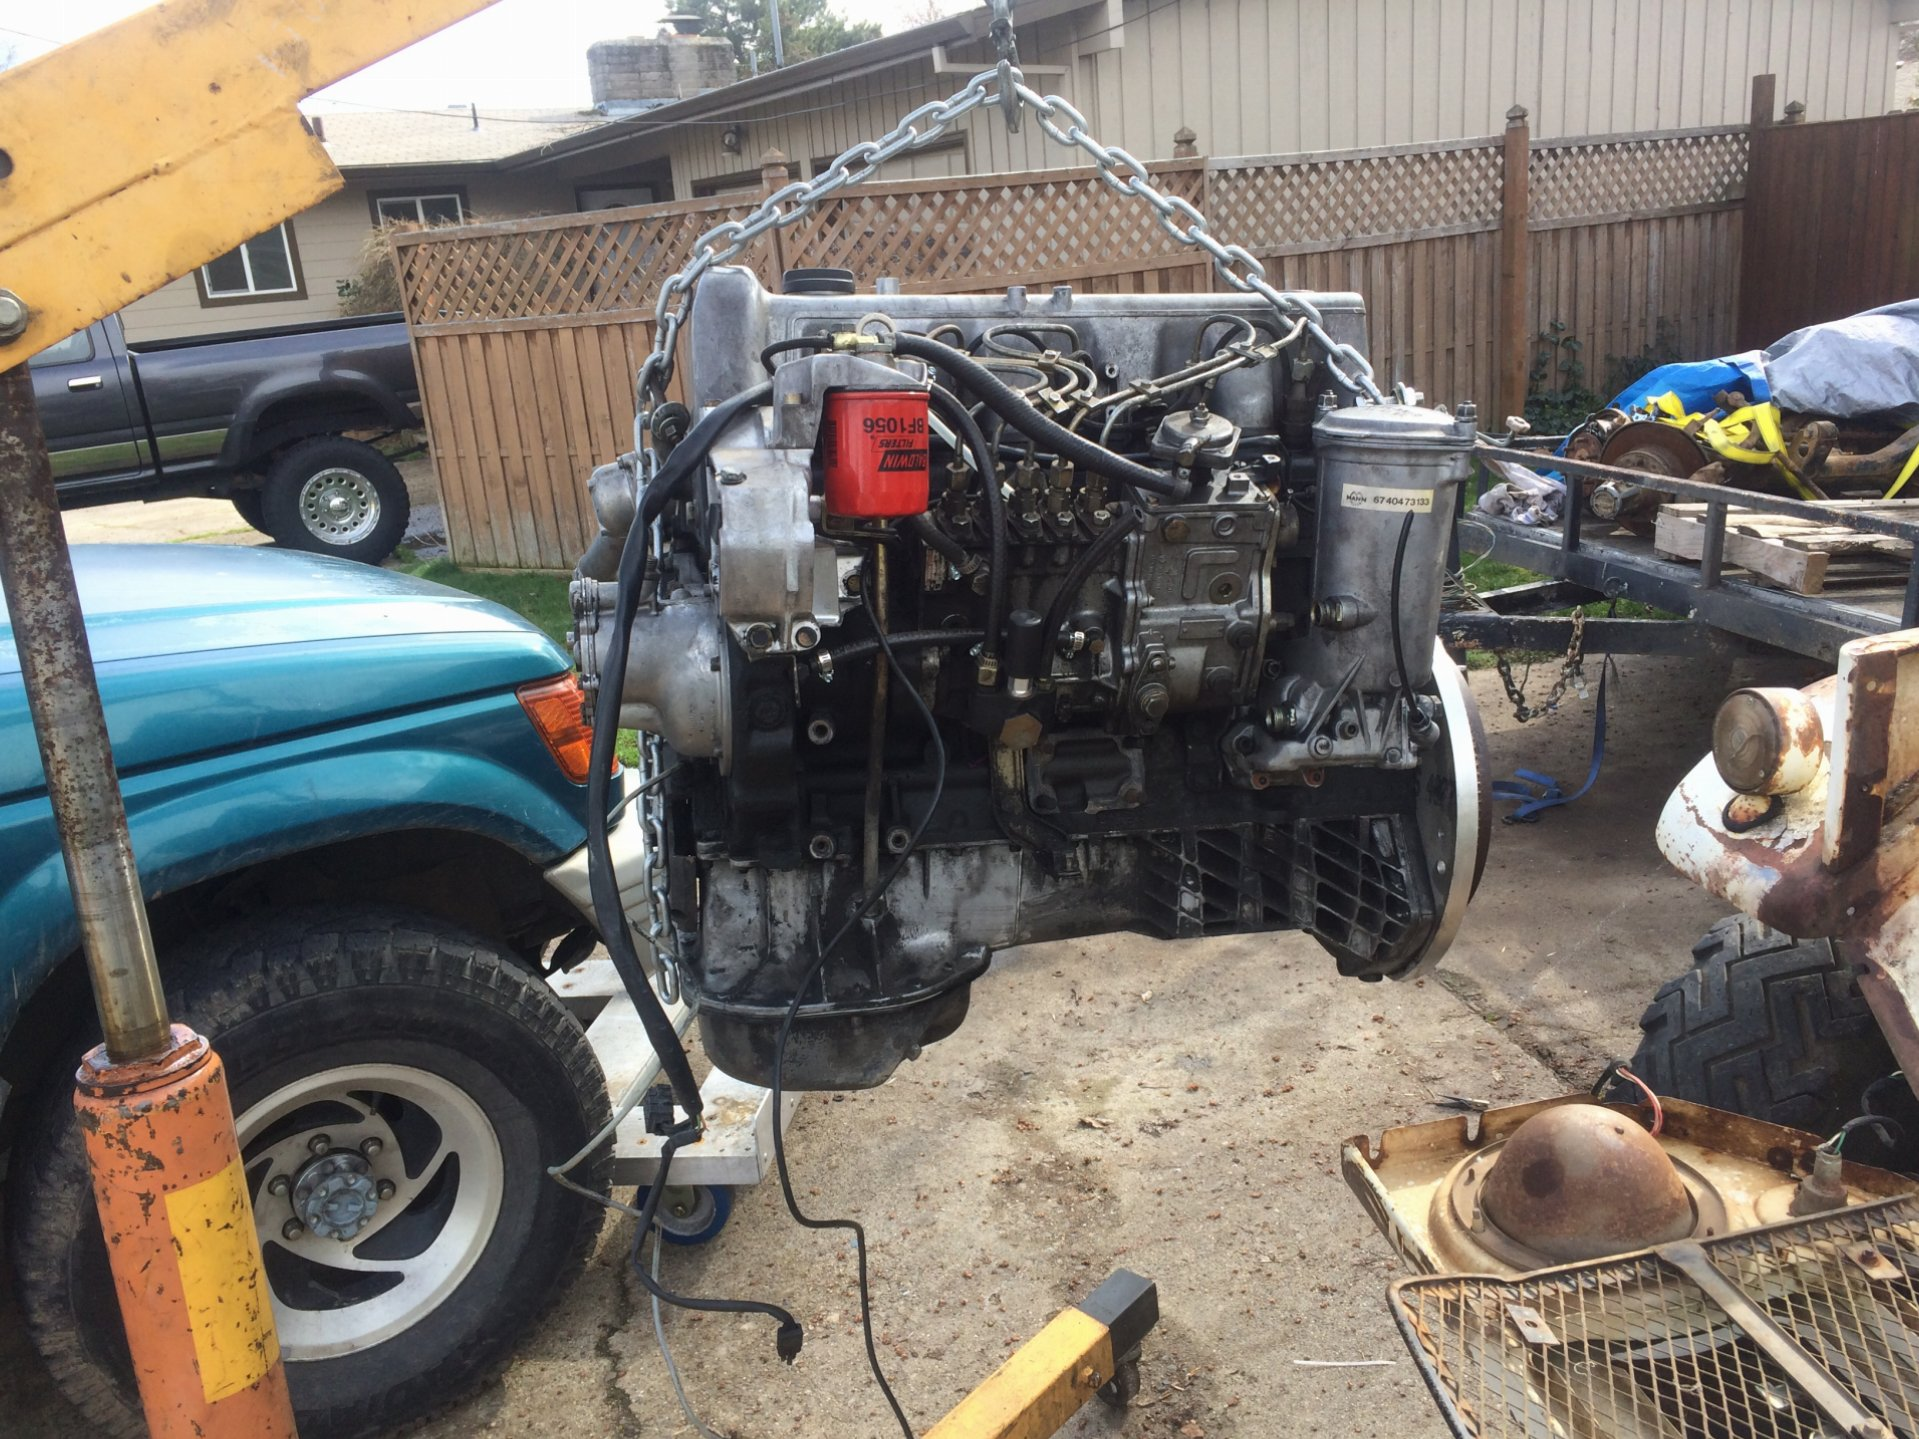 Builds - Another OM617 in an FJ40 thread | IH8MUD Forum